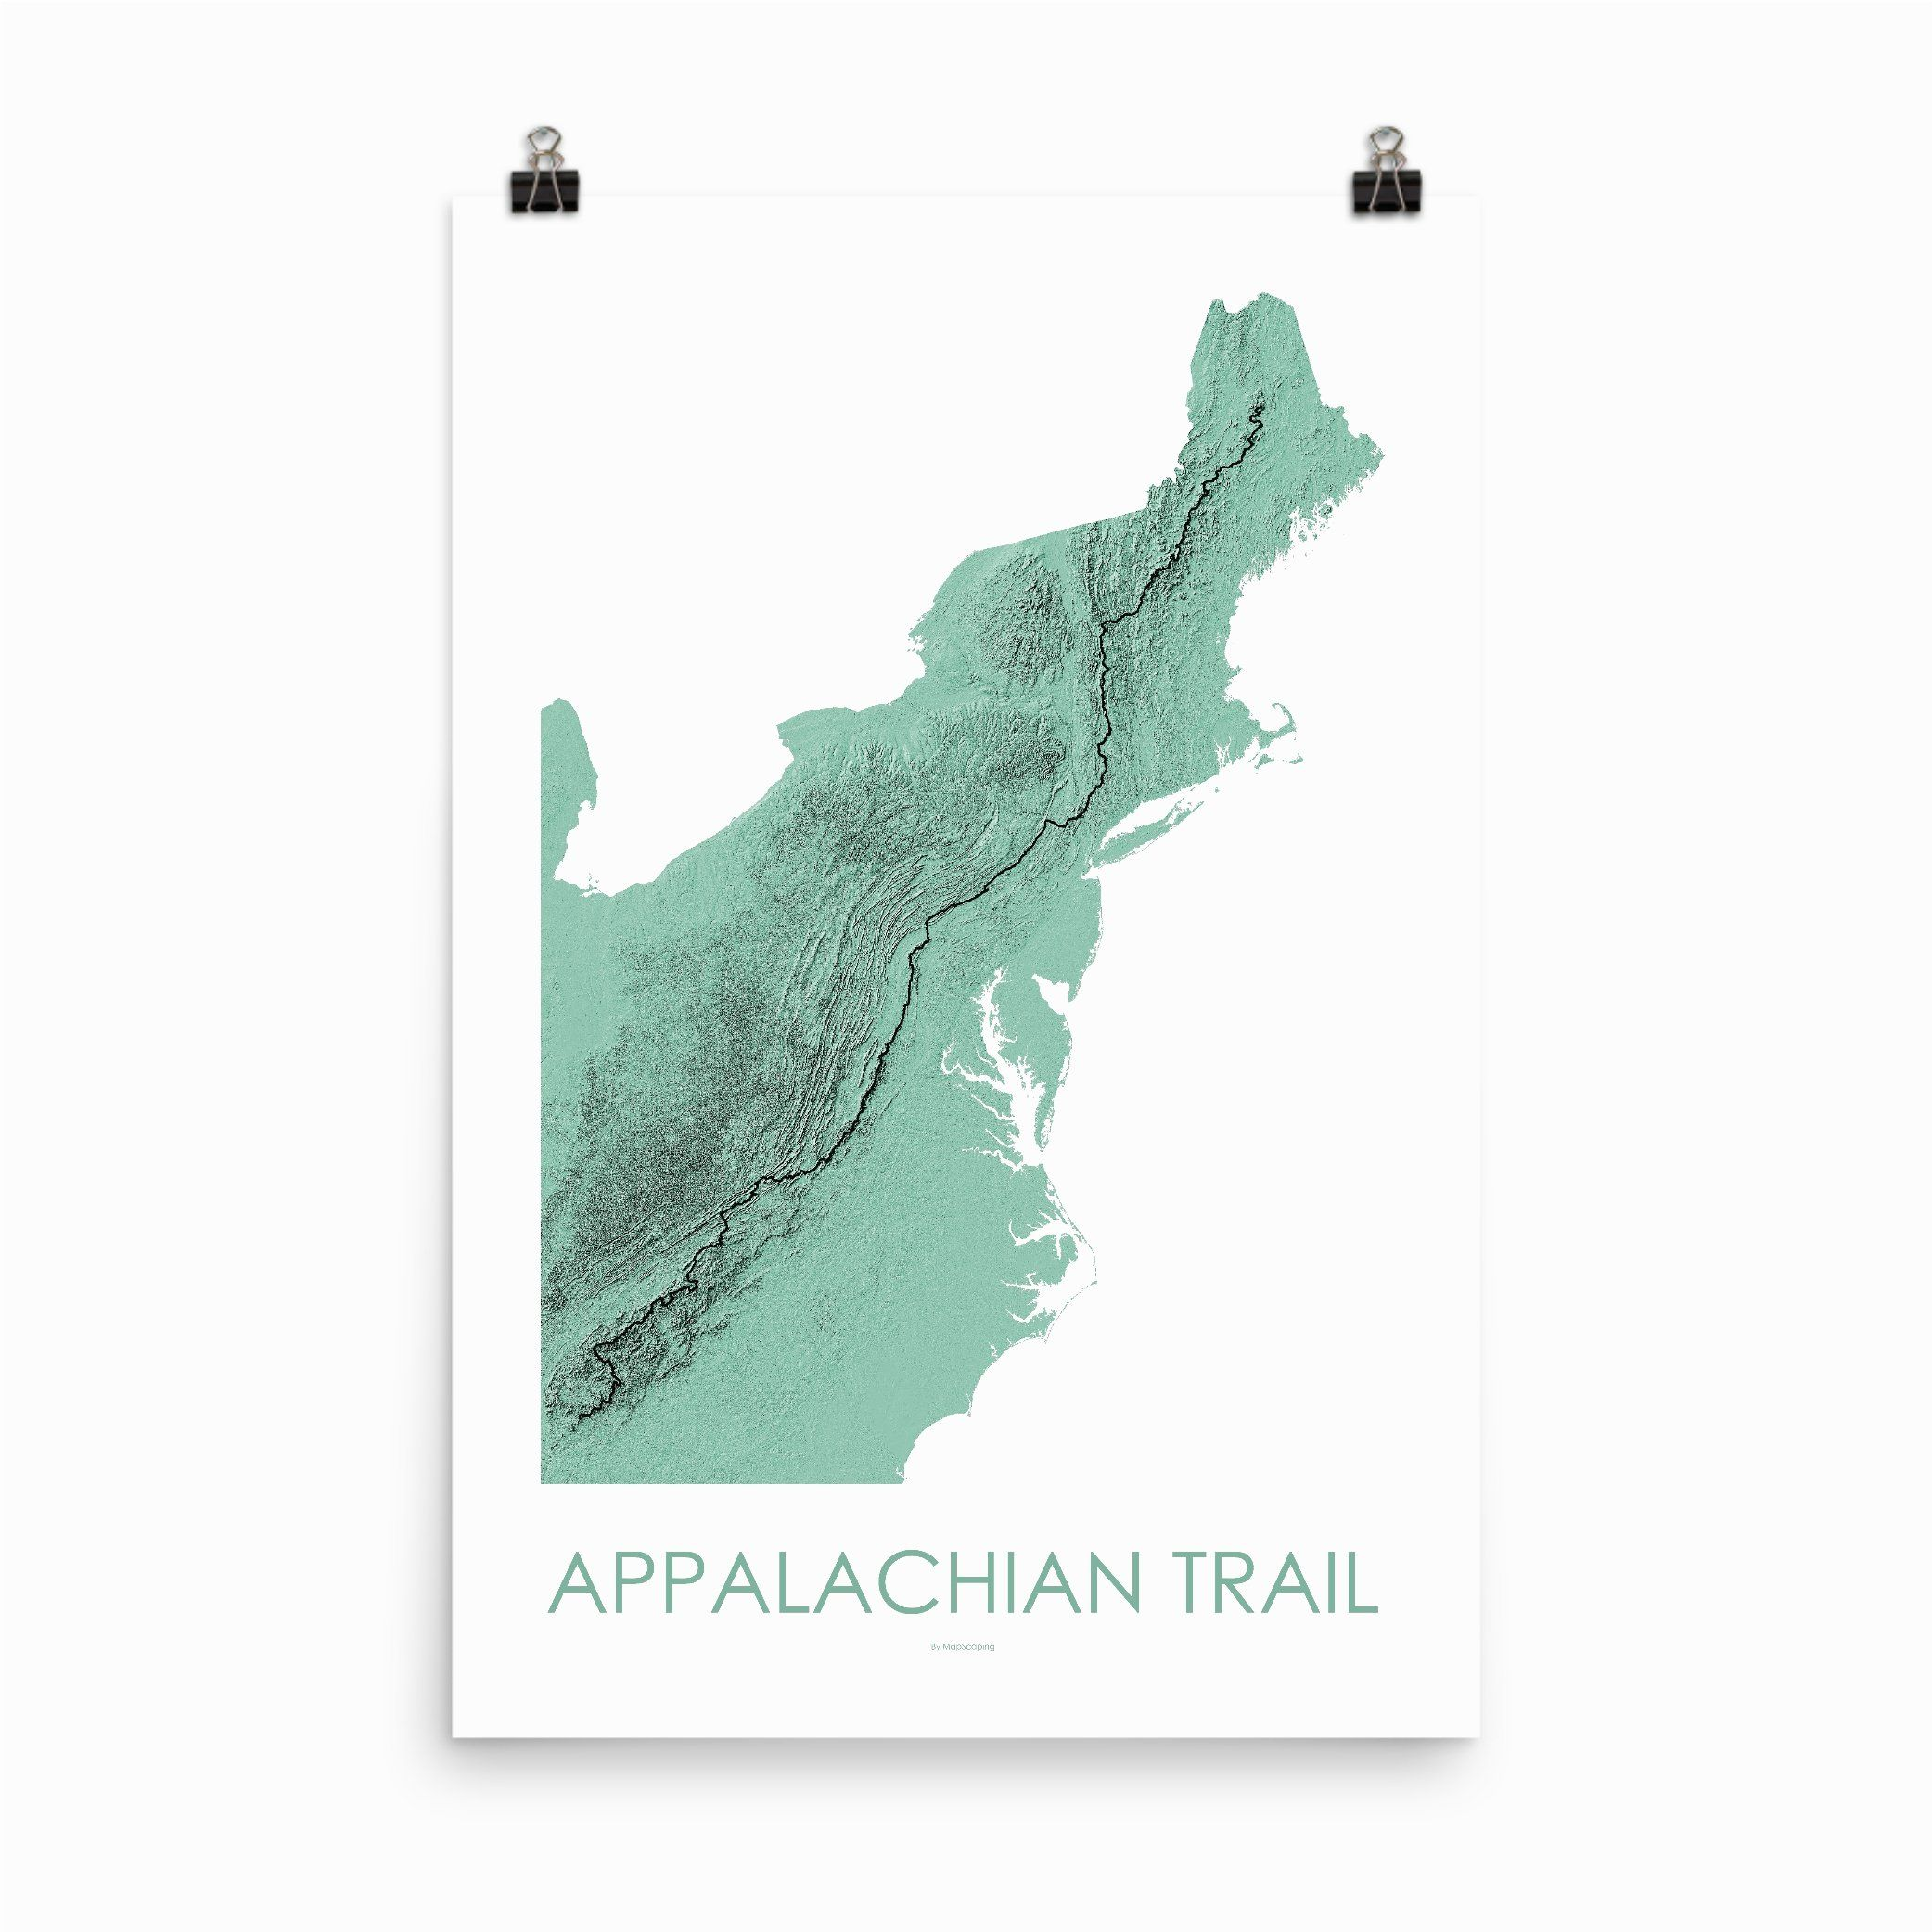 Appalachian Trail Map 3D Mint | NC Furniture in 2019 ... on toucan map, alligator range map, mosasaur map, american alligator map, shark map, brown hyena map, hippo map, emperor penguin map, hamster map, spectacled caiman map, cockroach map, crocodilian map, turtle map, deer map, cheetah map, boar map, striped hyena map, serval map, gopher map, water monitor map,